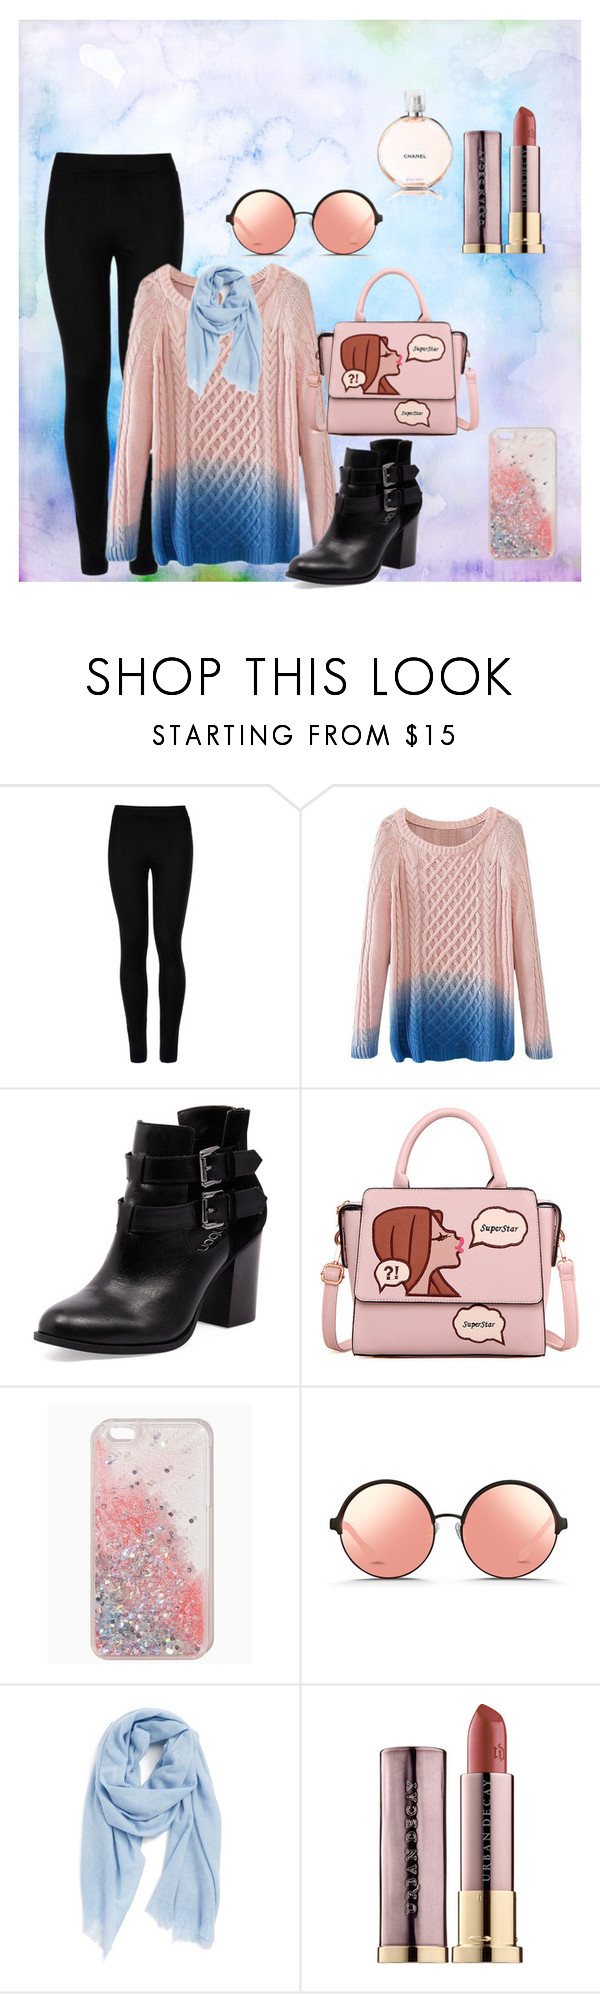 """""""Casual"""" by megeller on Polyvore featuring moda, Wolford, Bonbons, Matthew Williamson, Caslon, Urban Decay e Chanel"""